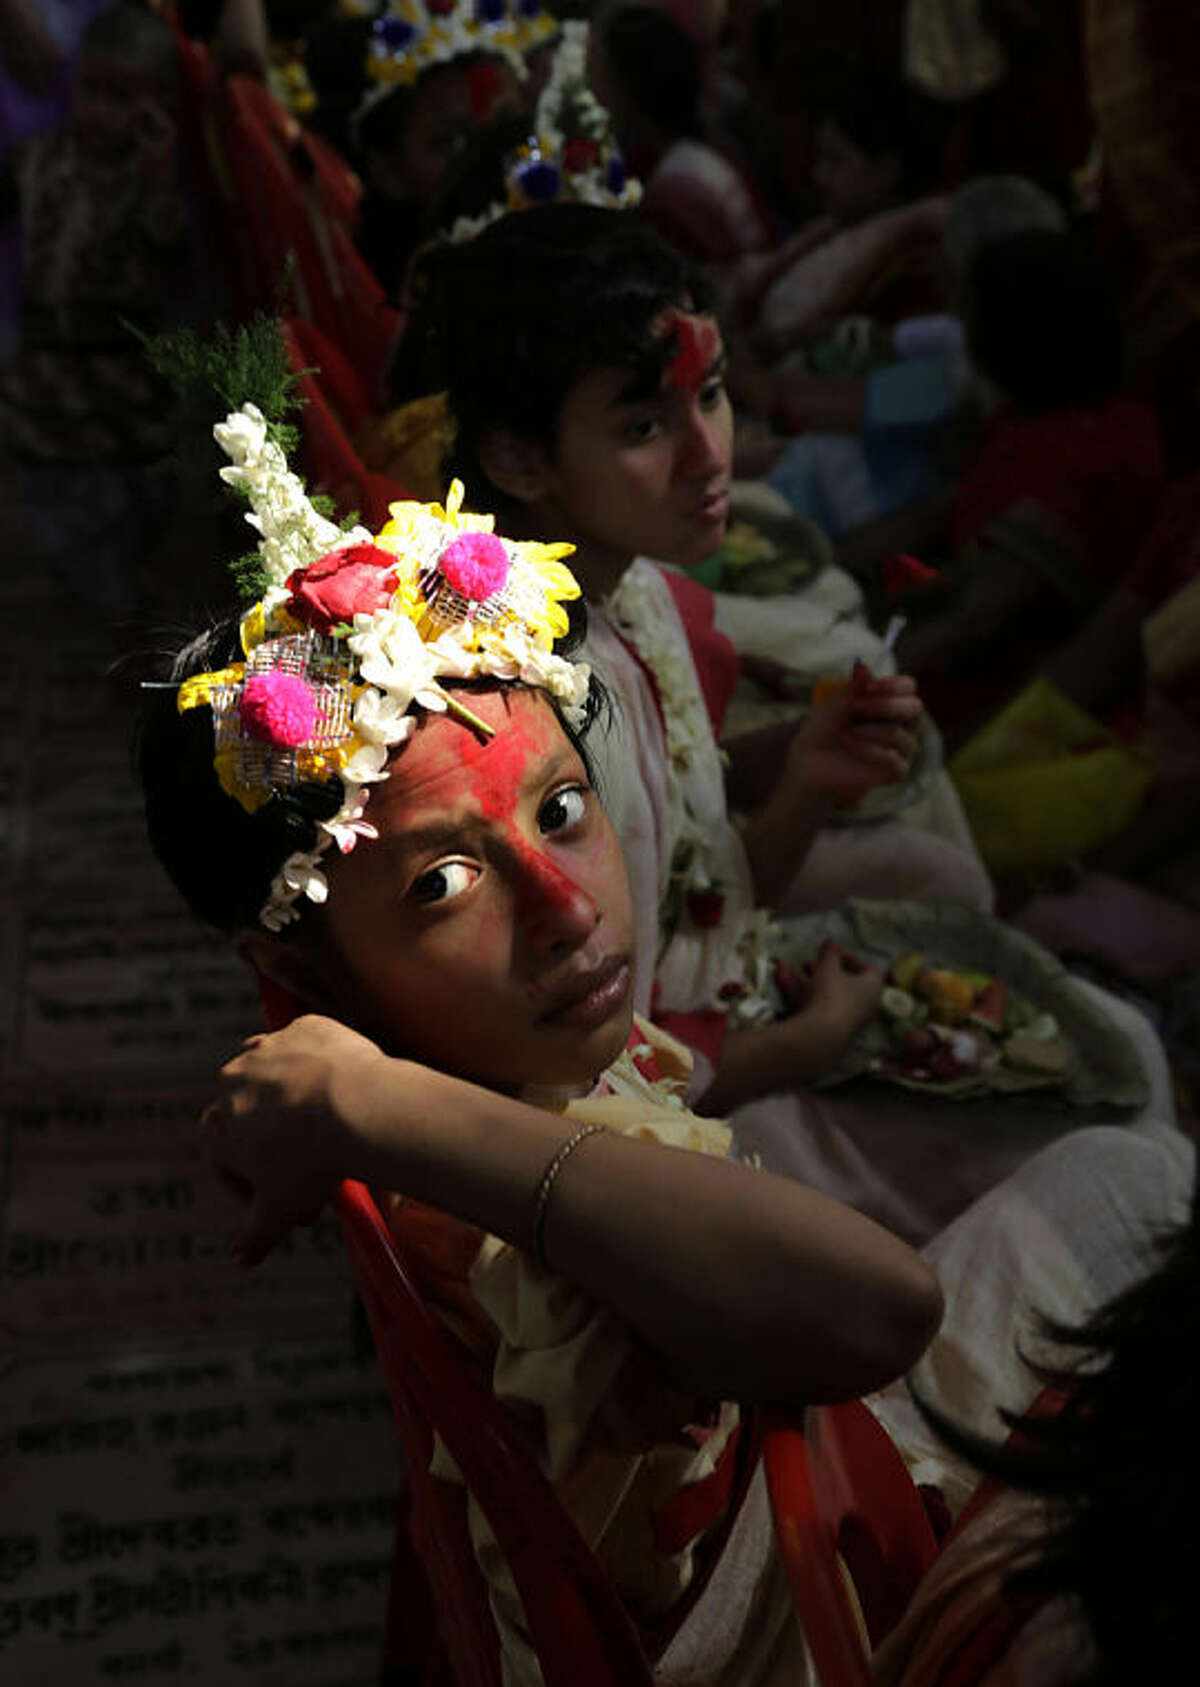 """A young girl Hindu girl dressed as """"Kumari,"""" or a living goddess, looks up as she is worshipped by devotees during the Hindu festival of Ram Navami, in Kolkata, India, Tuesday, April 8, 2014. (AP Photo /Bikas Das)"""